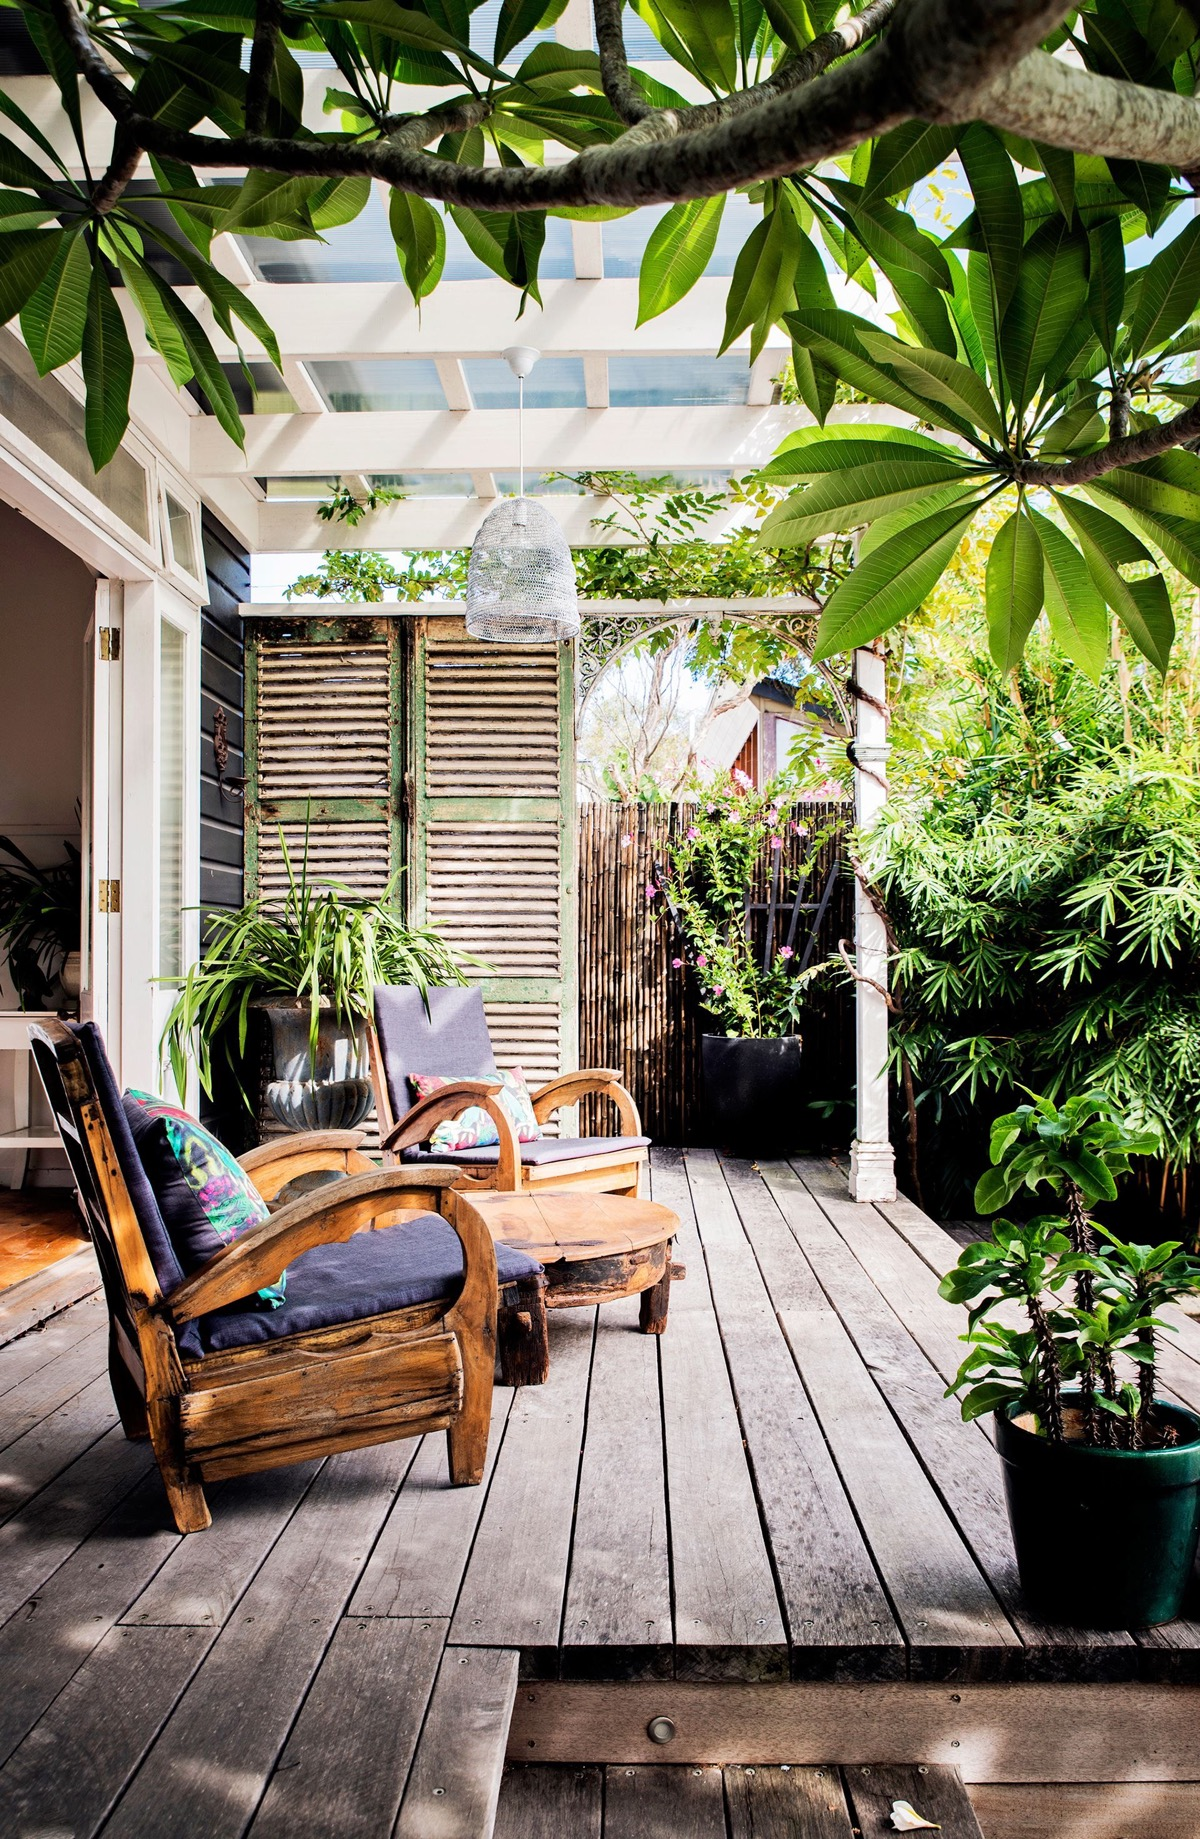 50 Gorgeous Outdoor Patio Design Ideas on Patio With Deck Ideas id=29493